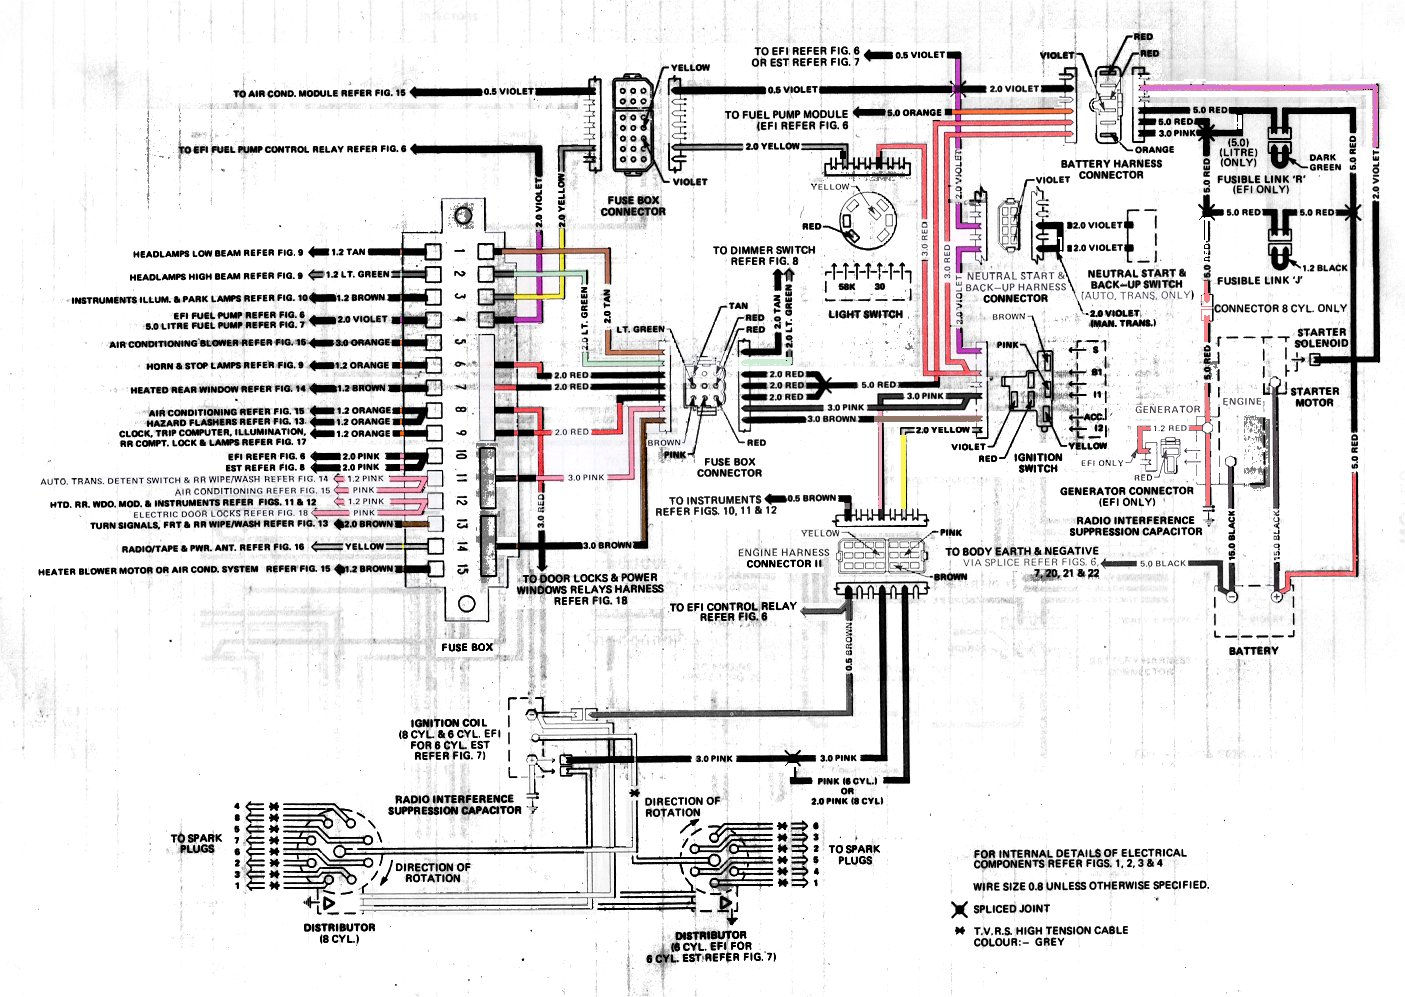 Vr V6 Auto Wiring Diagram Schematics Automotive Labeled Trusted Diagrams System